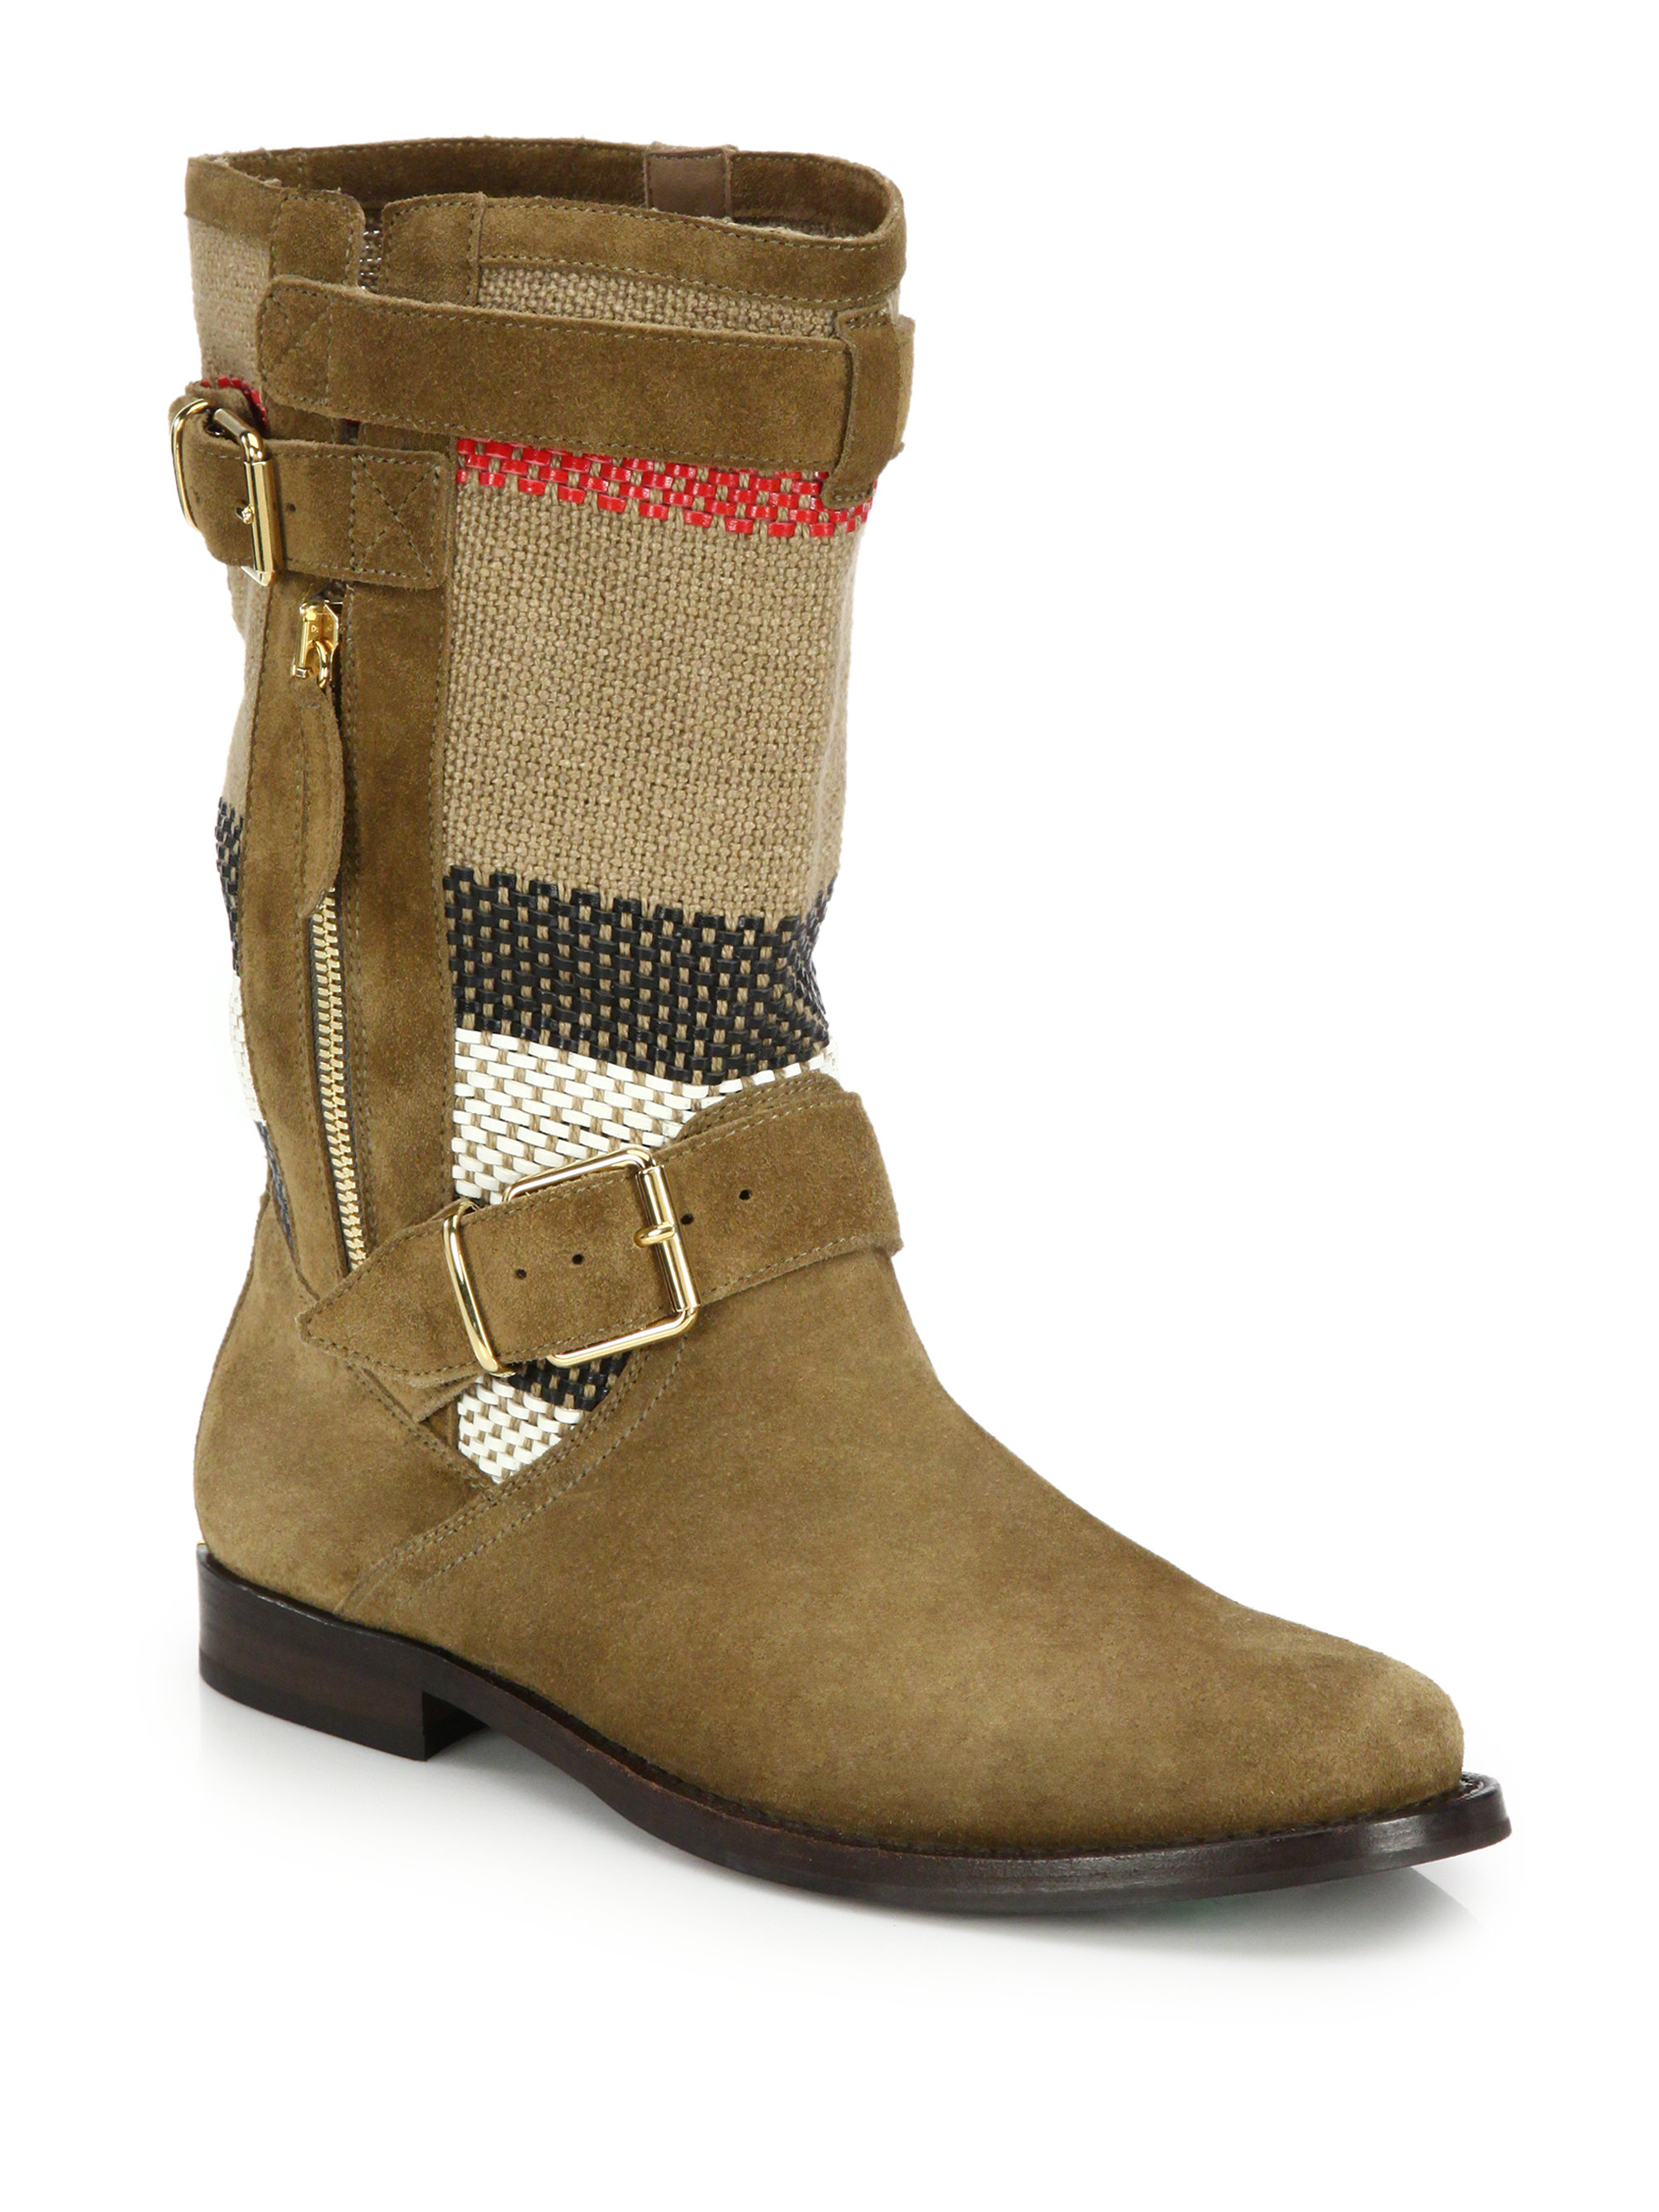 Burberry Grantsone Suede Amp Canvas Check Moto Boots In